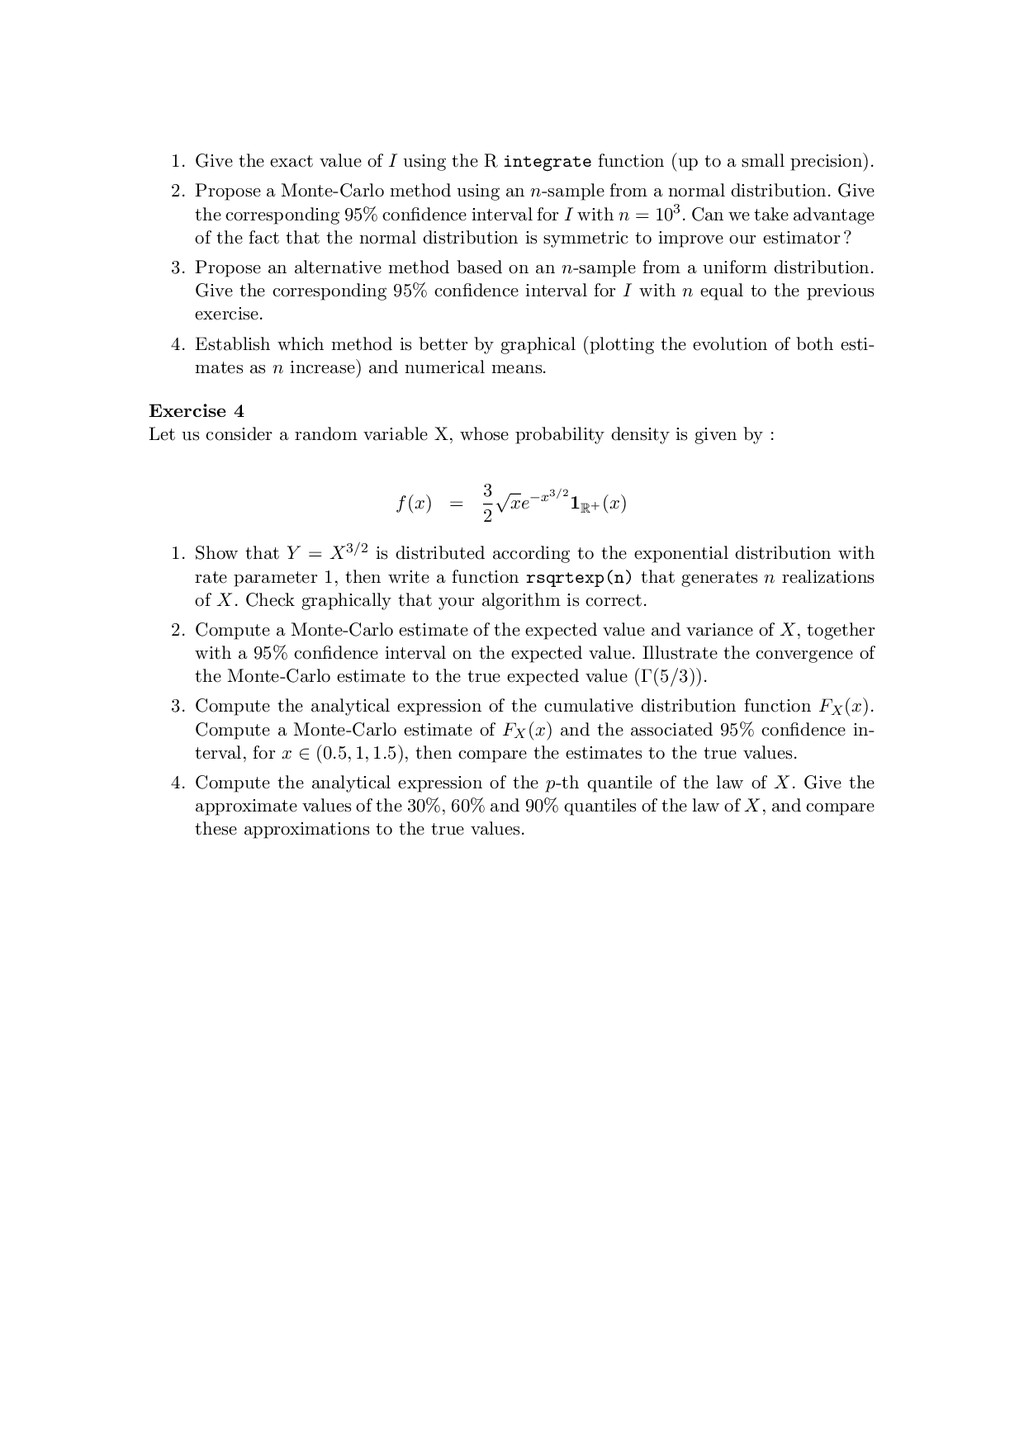 1. Give the exact value of I using the R integr...